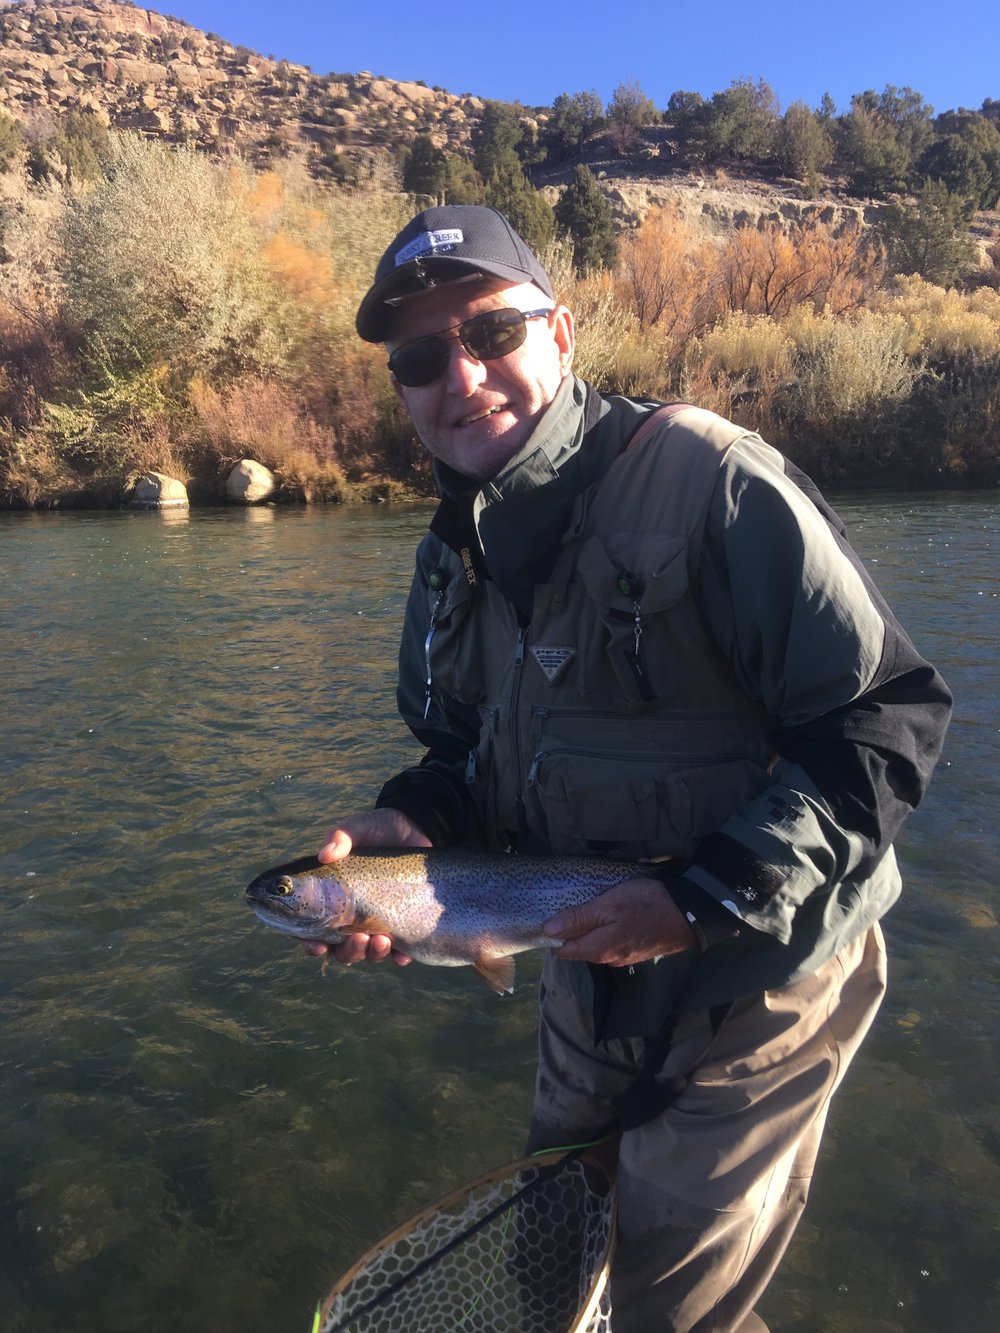 Britt Donaldson  Britt Donaldson grew up in New Mexico and started fly fishing around 1980. Most of Britt's fly fishing experiences have taken place on the San Juan river in northern New Mexico. Britt worked with Big Brothers/Big Sisters in New Mexico while he was employed in the banking industry. Through that experience, he developed a desire to work with disadvantaged children. Britt looks forward to sharing his fly fishing skills with young people participating in the Mayfly Project.